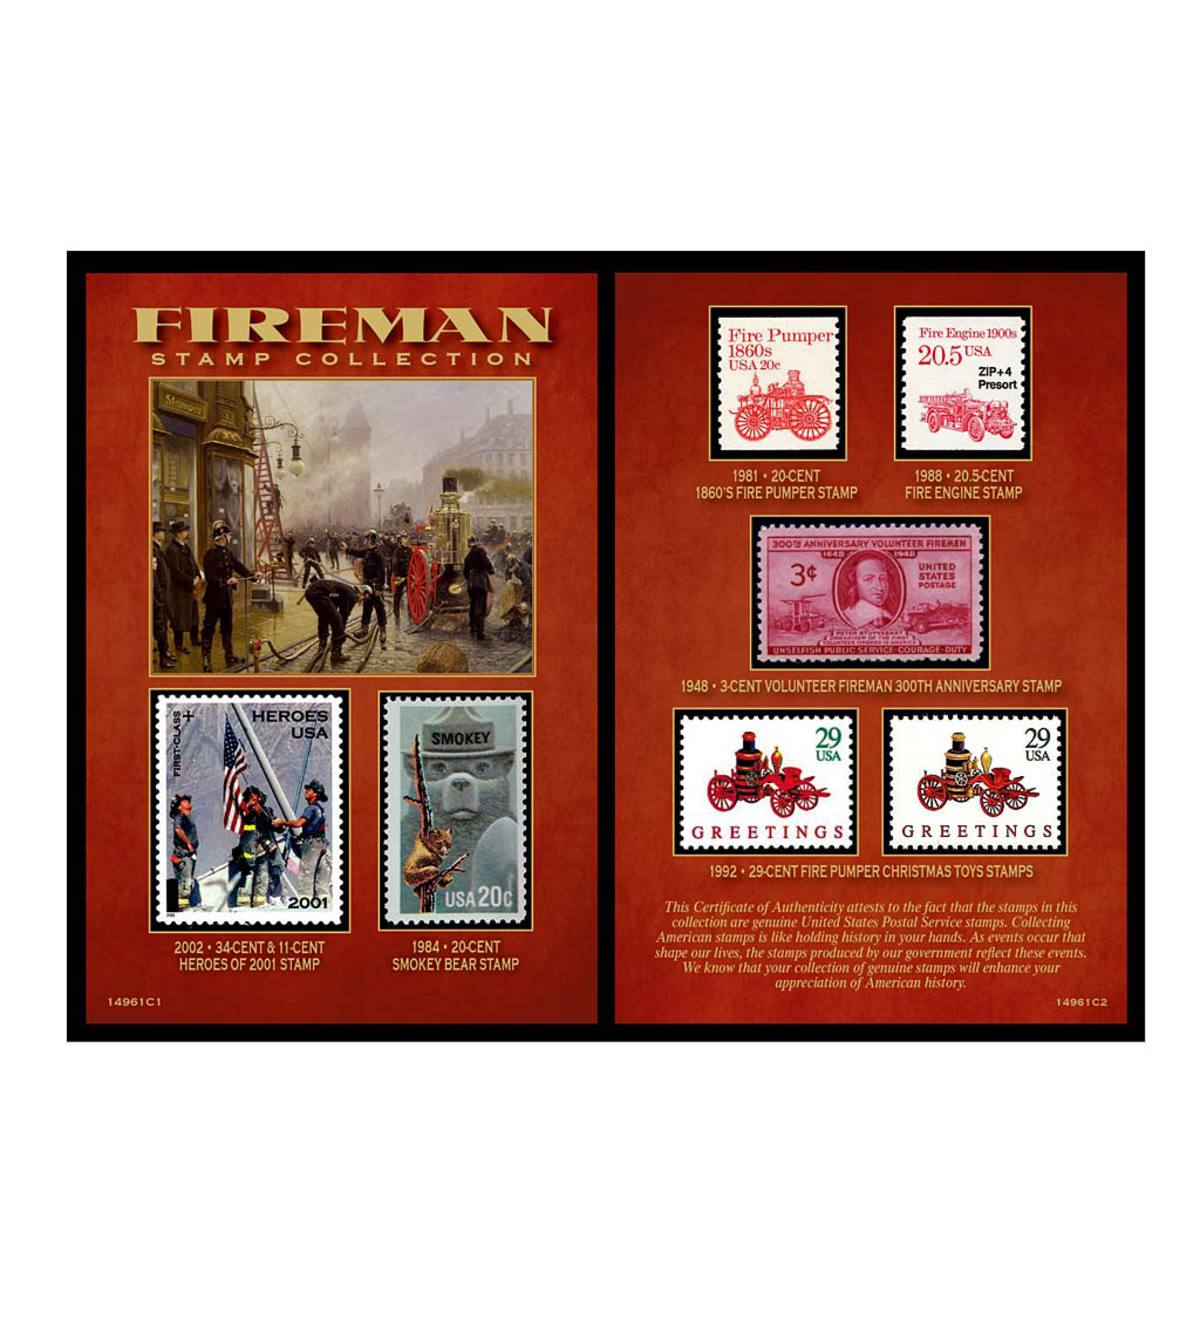 Fireman Historical Stamp Collection Gift Set